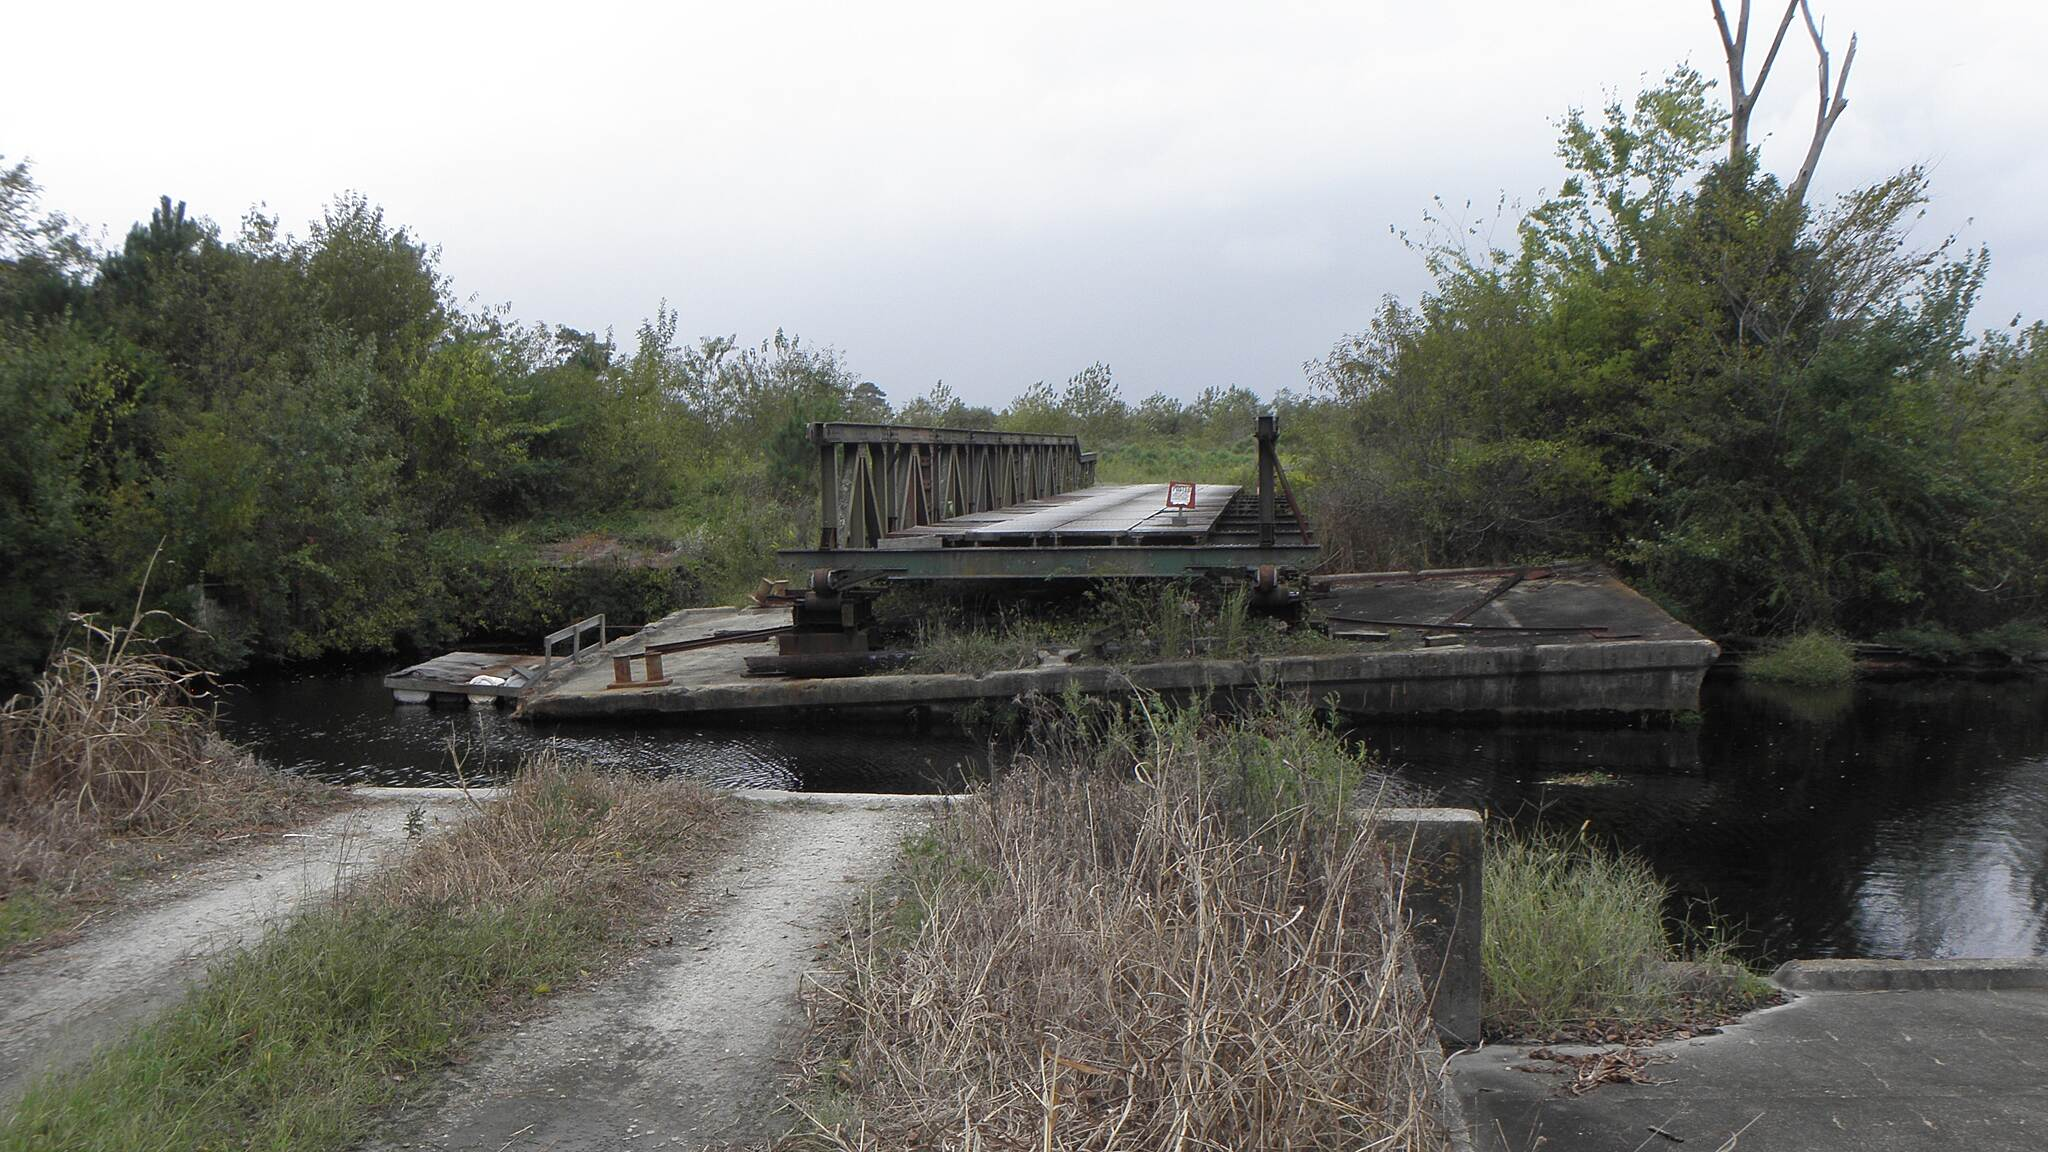 Dismal Swamp Canal Trail (VA) Private canal bridge Can be extended over canal when needed.